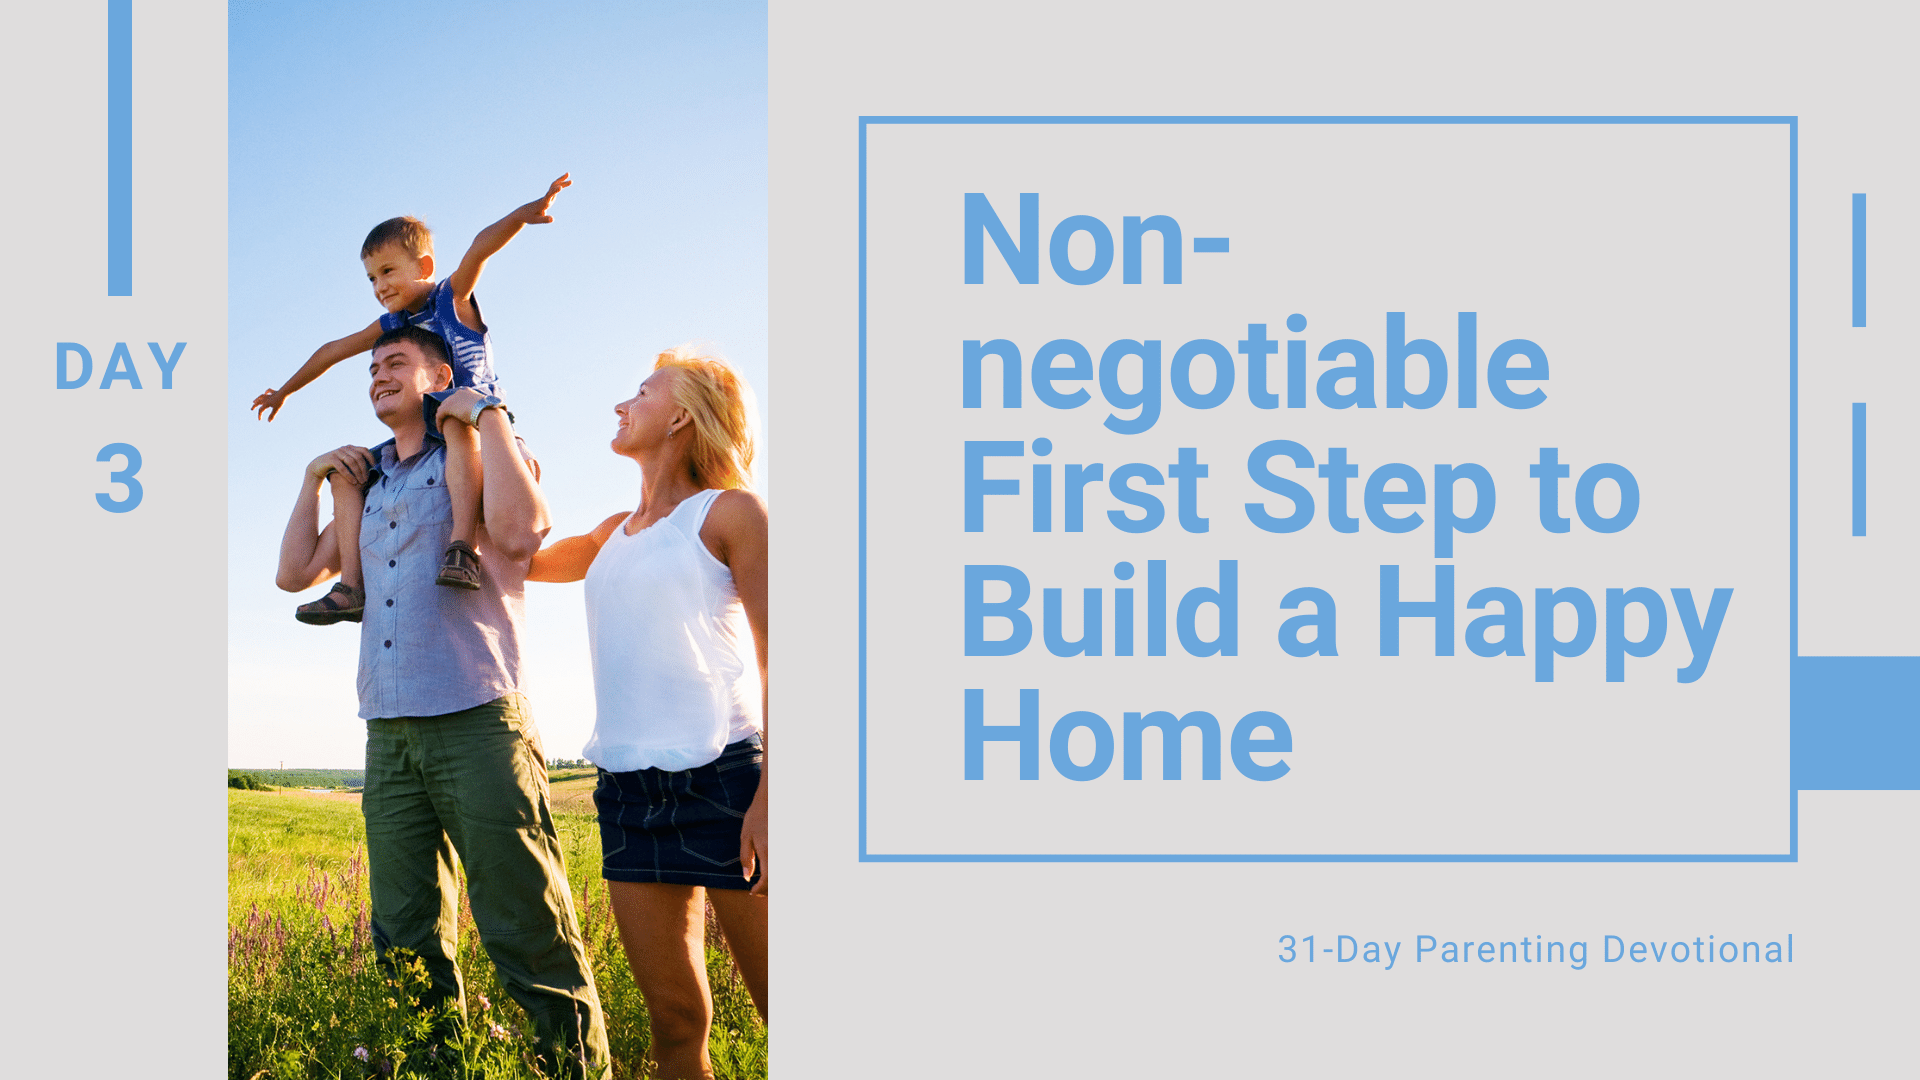 3 Non-negotiable First Step to Build a Happy Home, Day 3